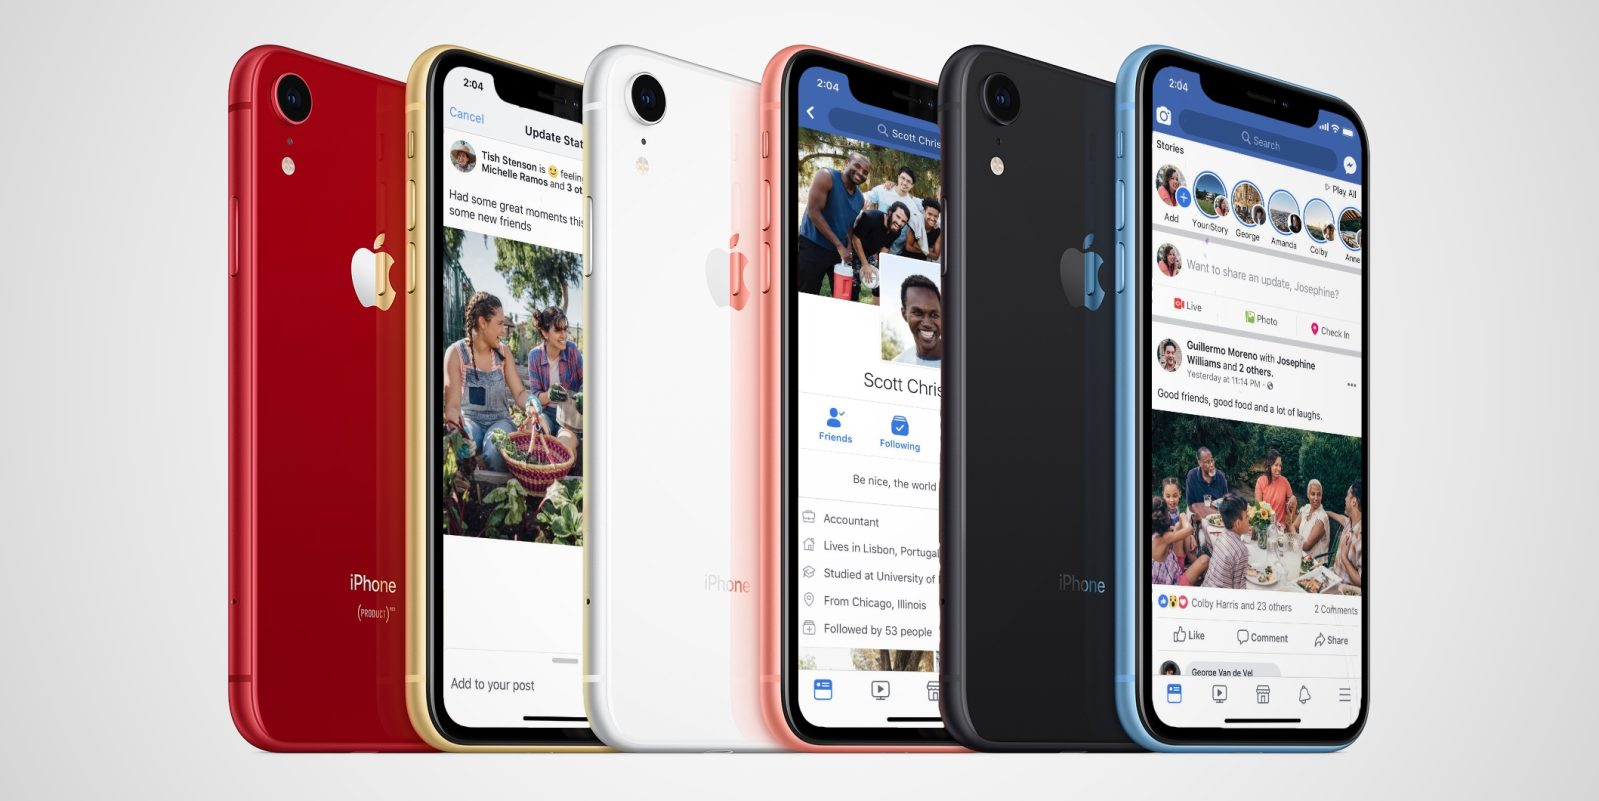 Facebook app update adds native screen resolution support for iPhone XS Max, iPhone XR and 2018 ...